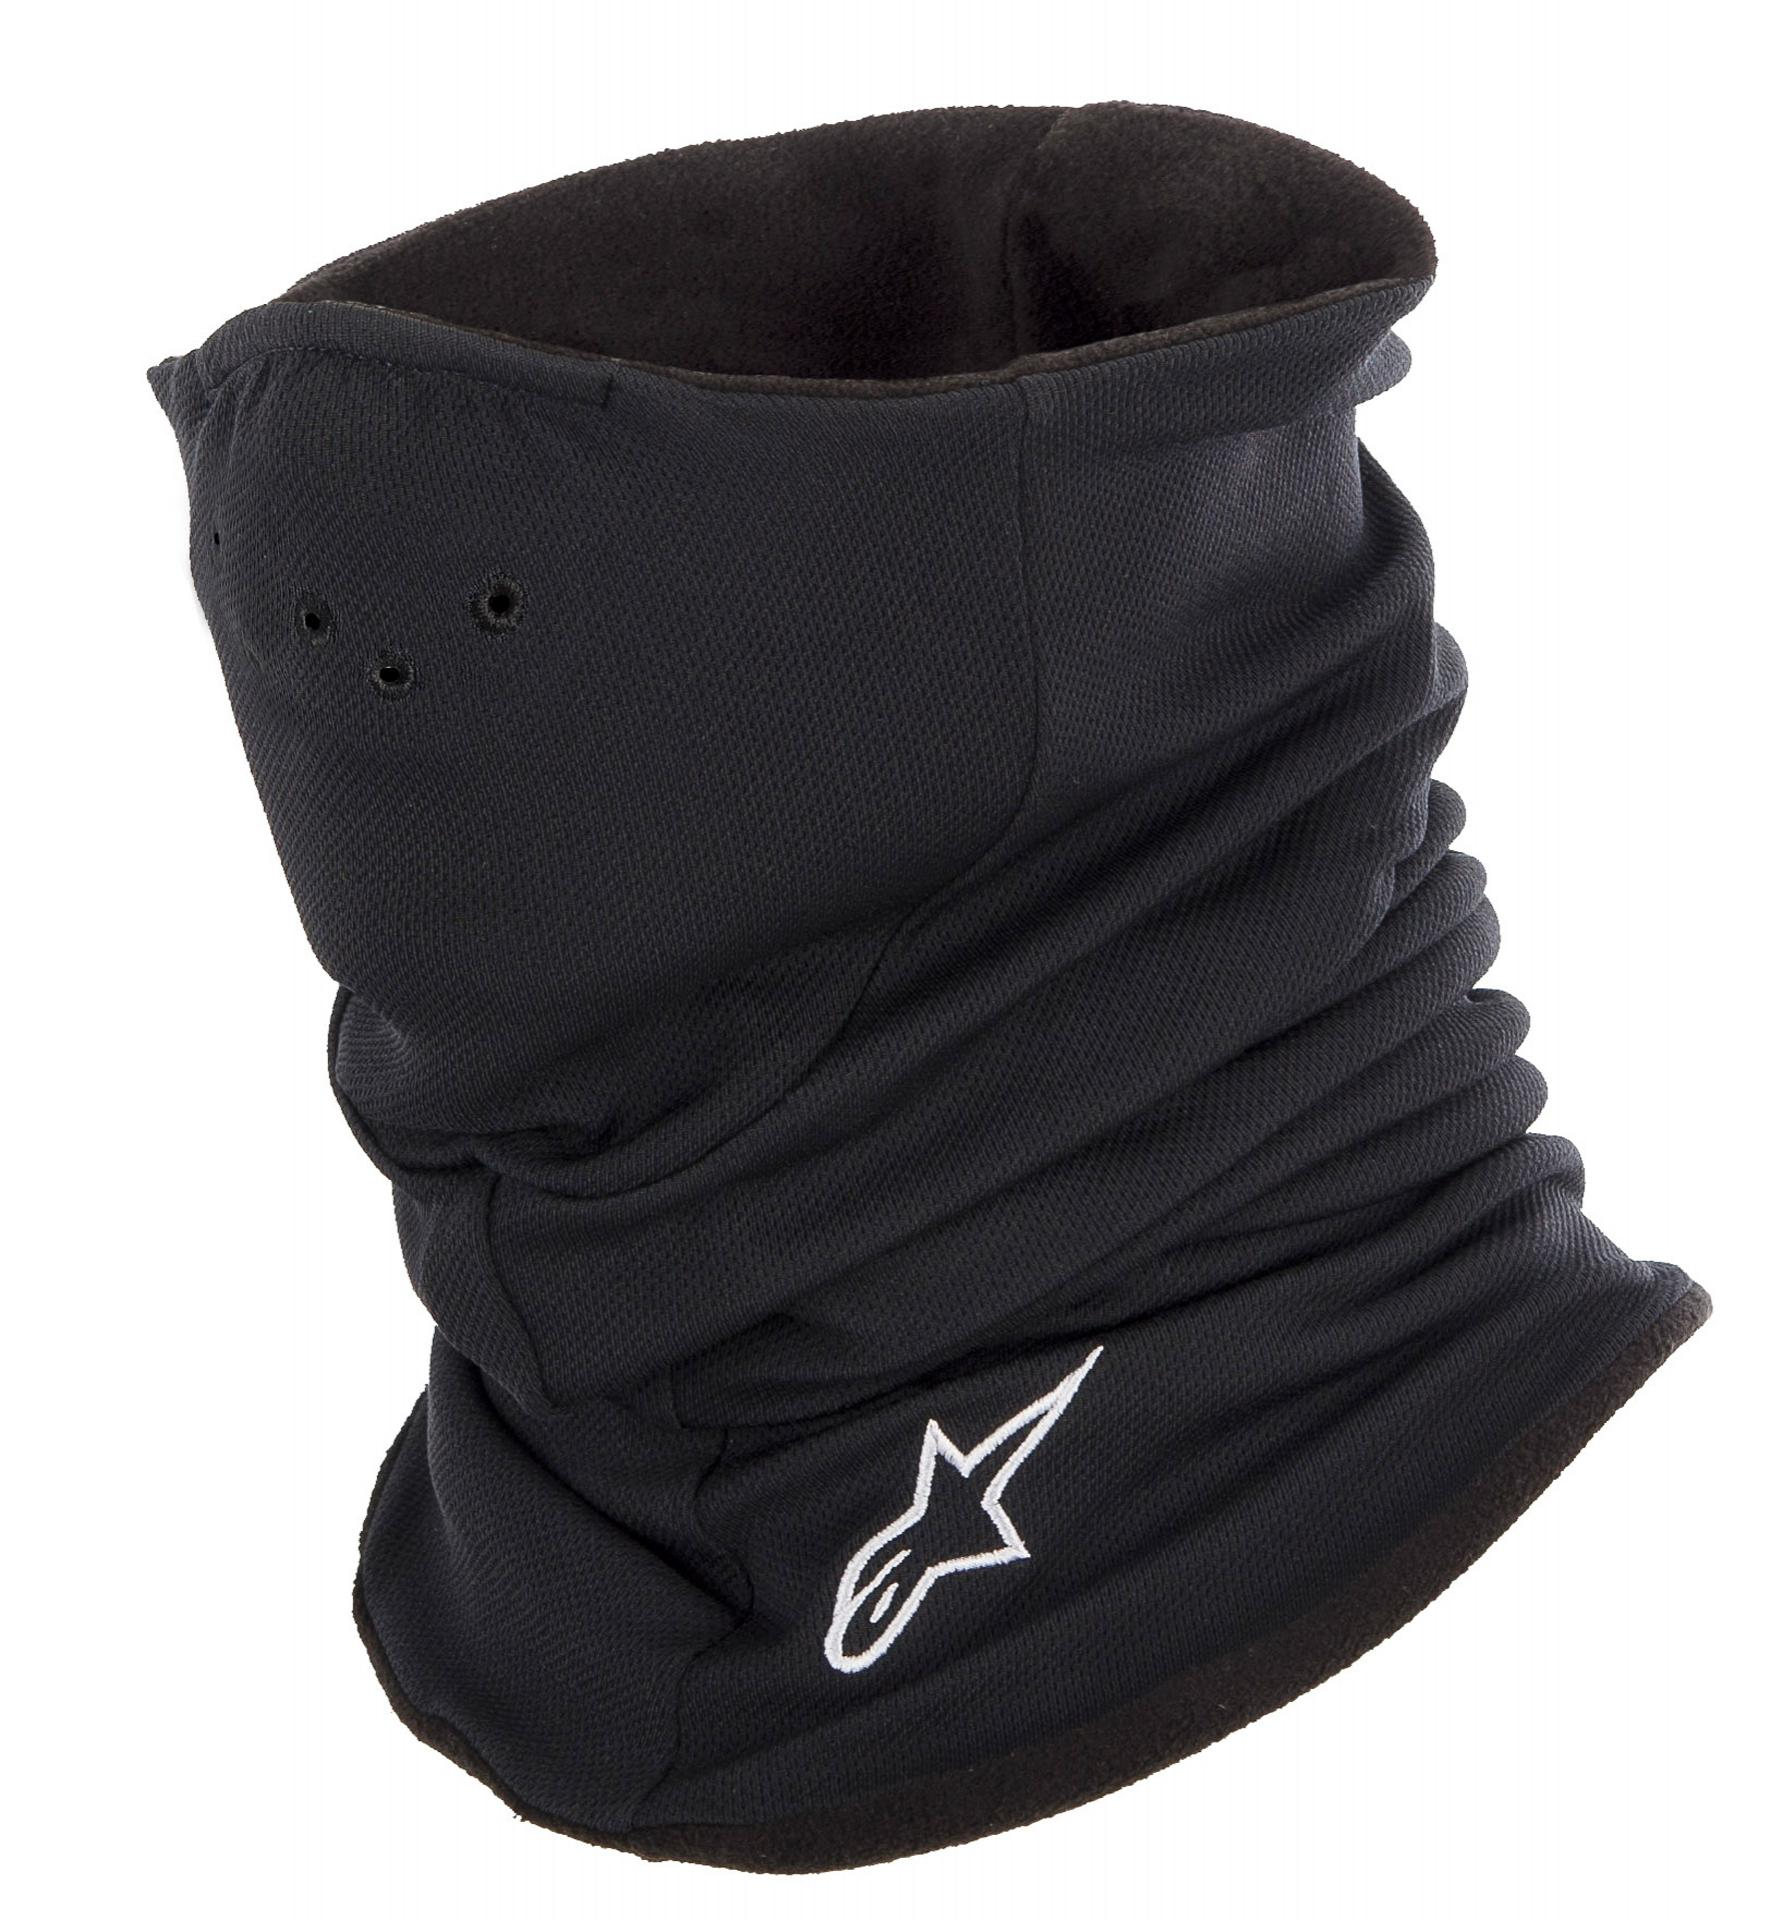 Alpinestars Nekwarmer Zwart  / AL Tech Neck Warmer-Black-OS